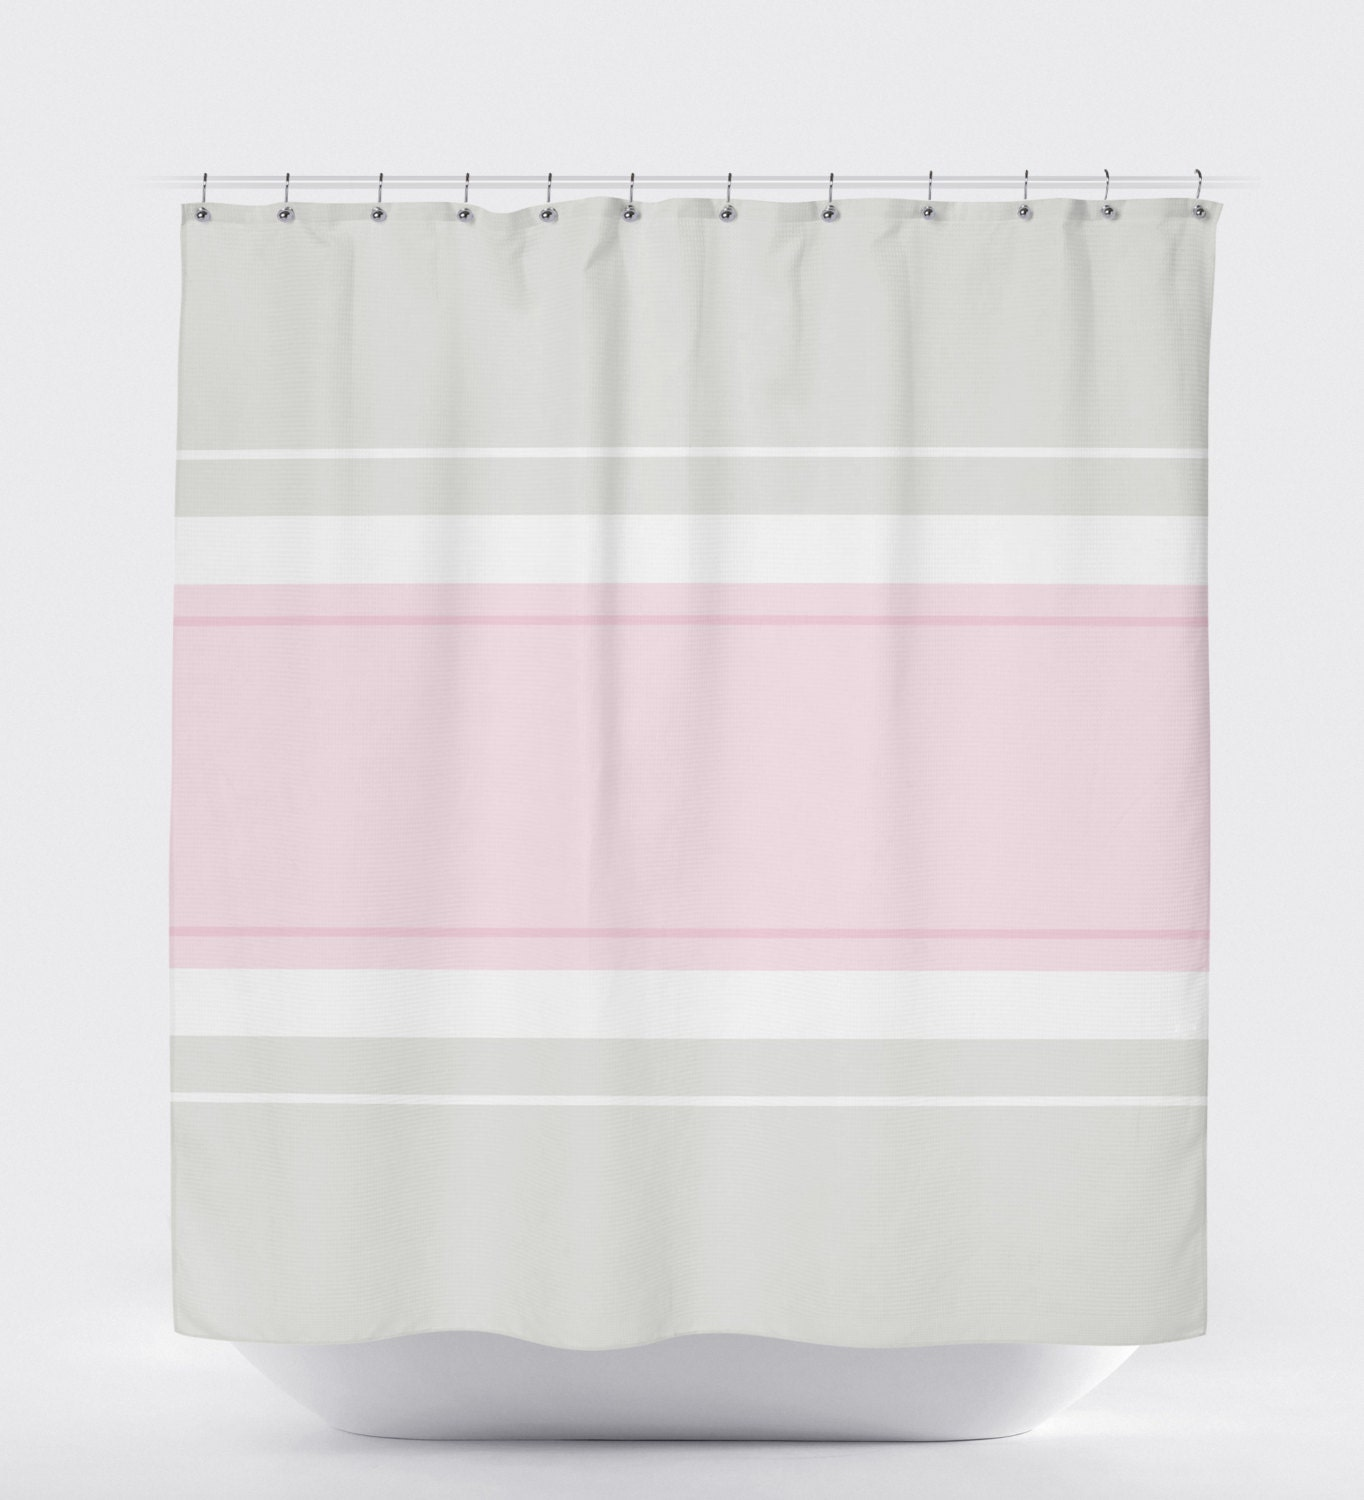 Minimalist Shower Curtain Pink Shower Curtain Striped Shower Curtain Gray Bathroom Decor Gray Bathroom Decor Modern Shower Curtain